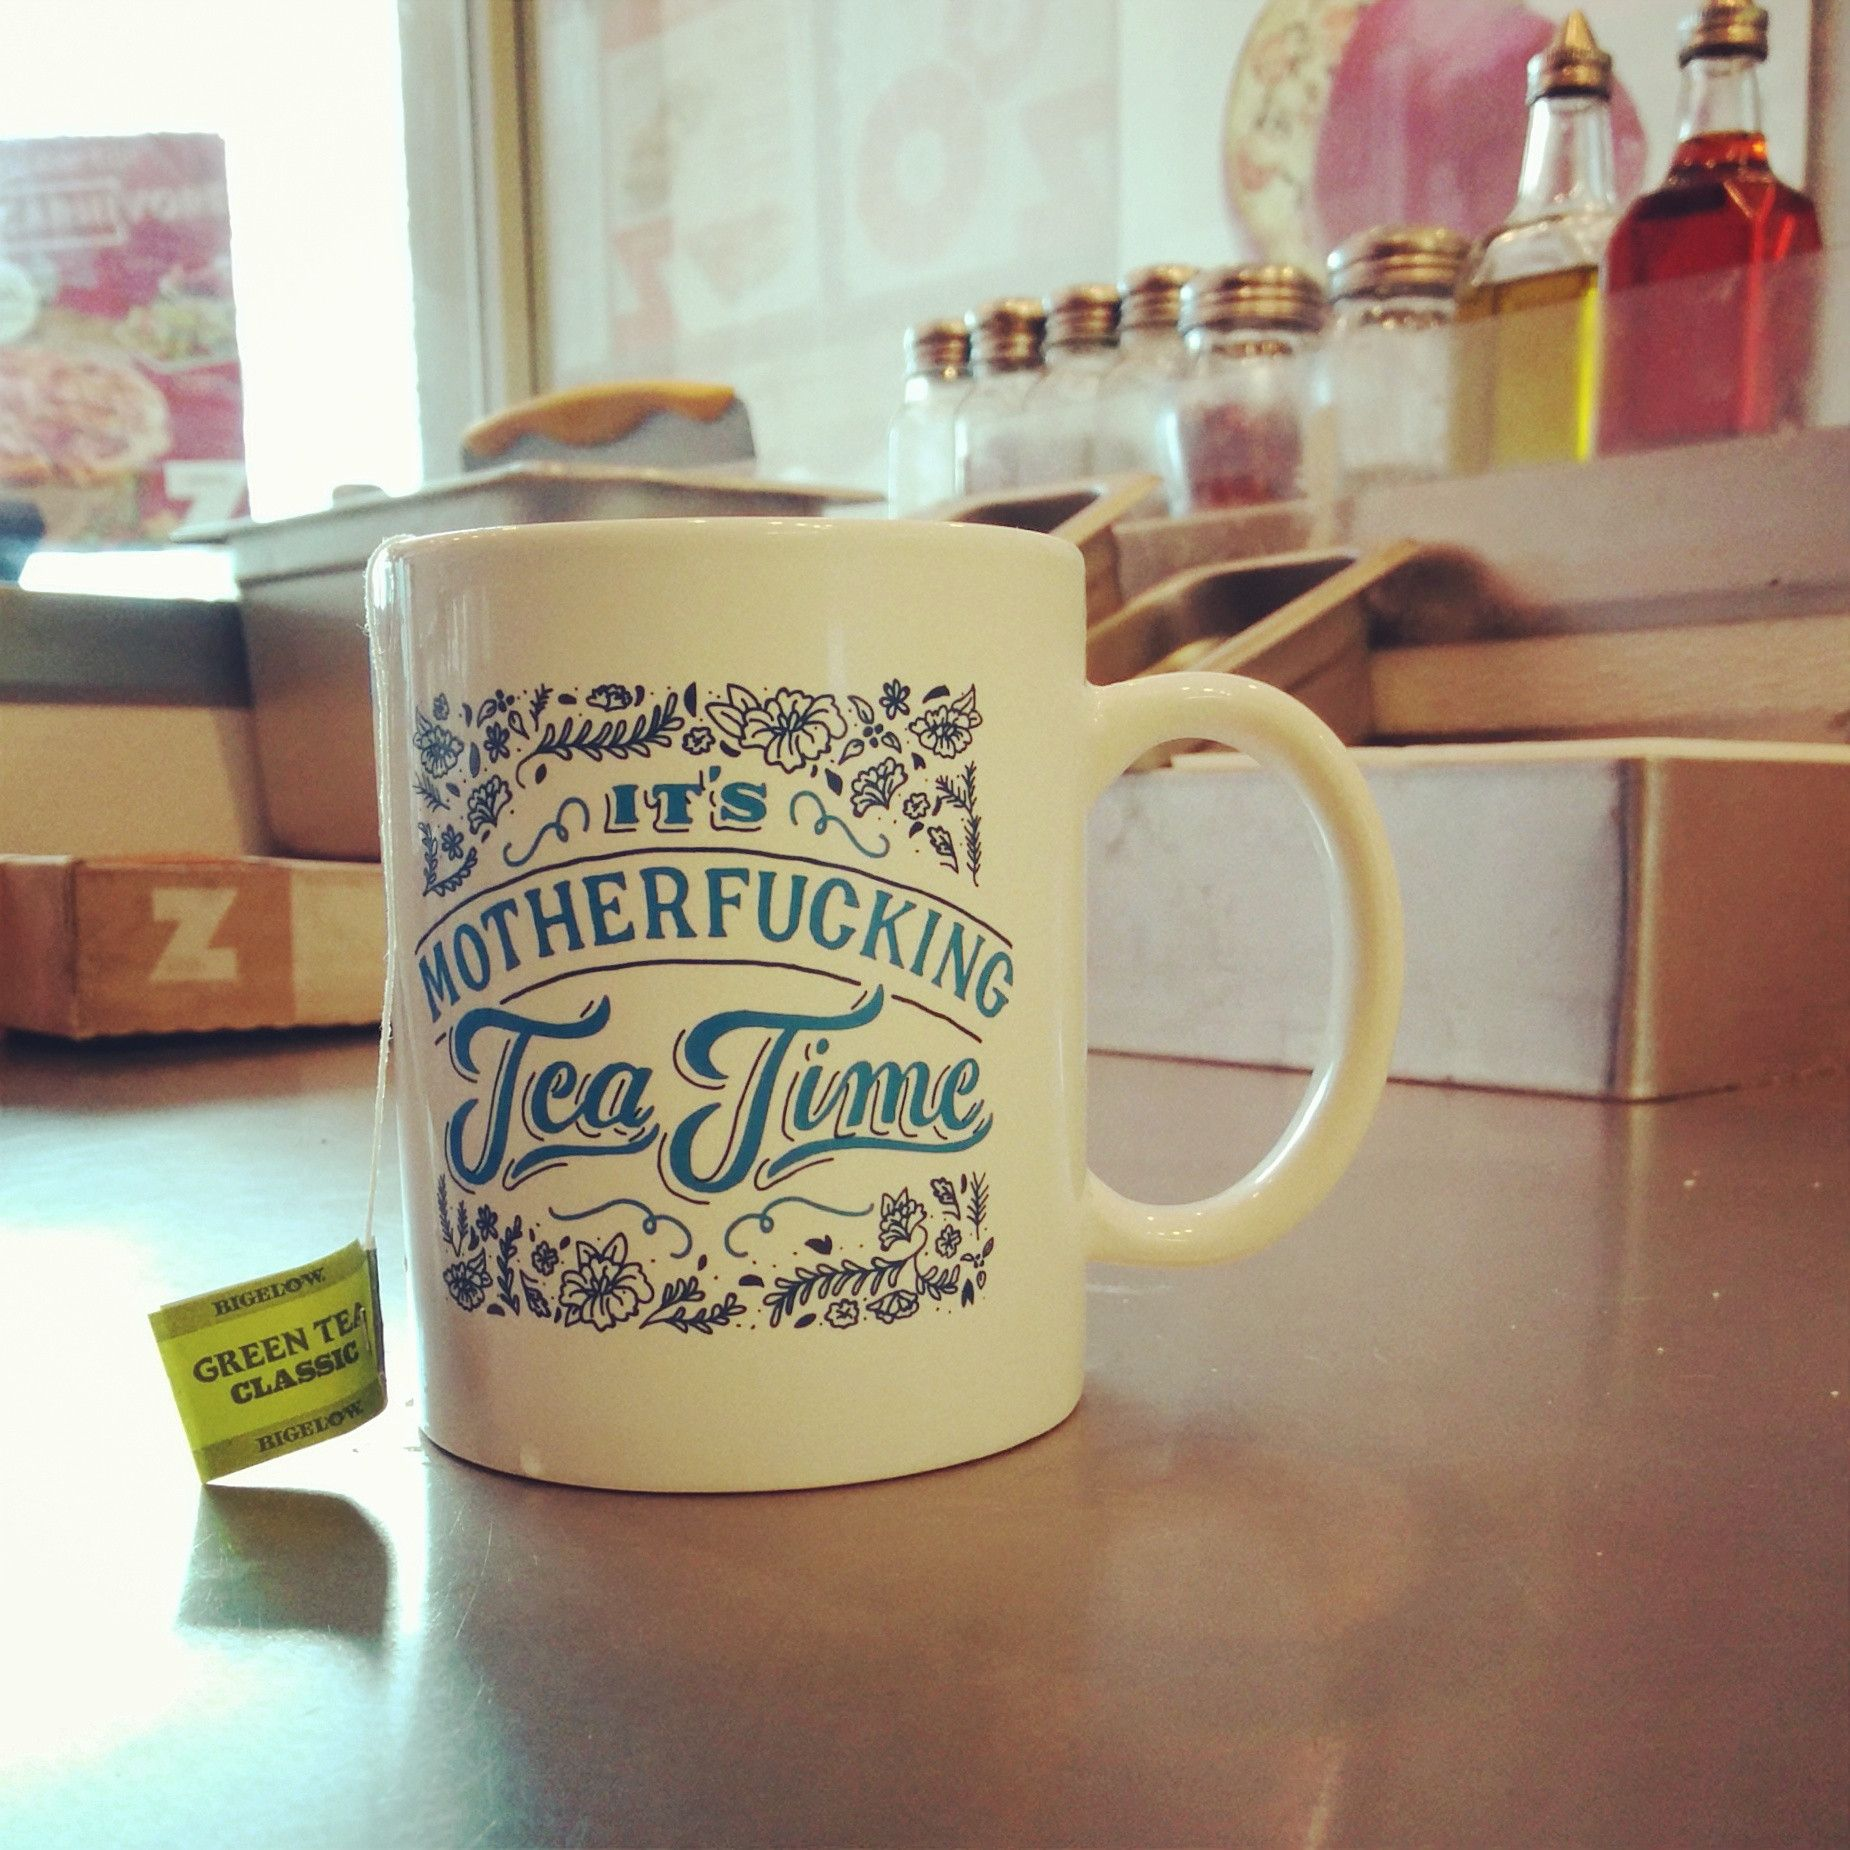 Tea Time mug from UO http://www.urbanoutfitters.com/urban/catalog/productdetail.jsp?id=33505223&parentid=GIFT-COUNTER#/